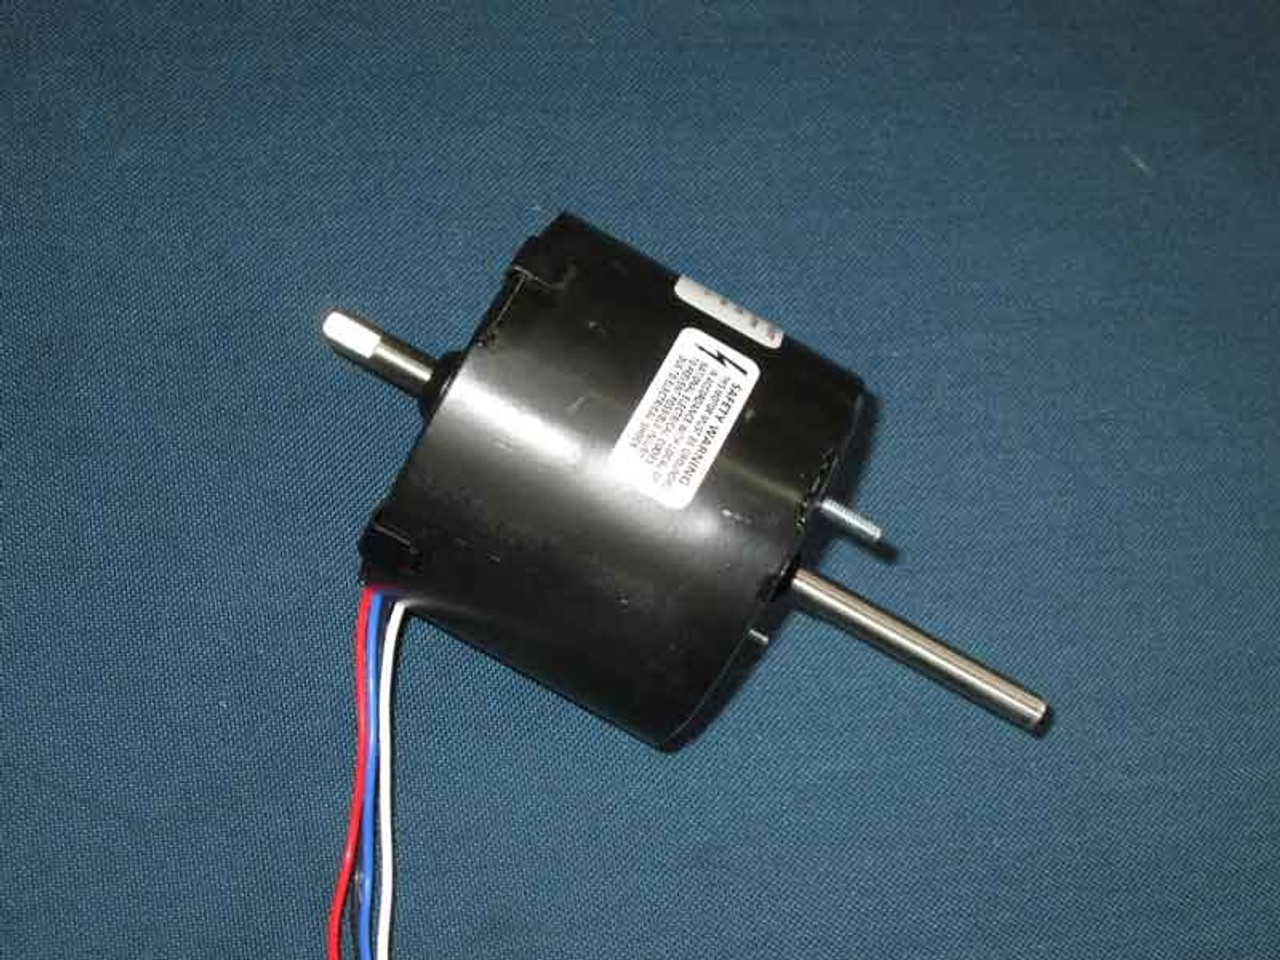 1MBS2 2__33606.1493896283?c=2 3 speed blower motor (old style) 1mbs1 Blower Motor Relay Diagram at reclaimingppi.co